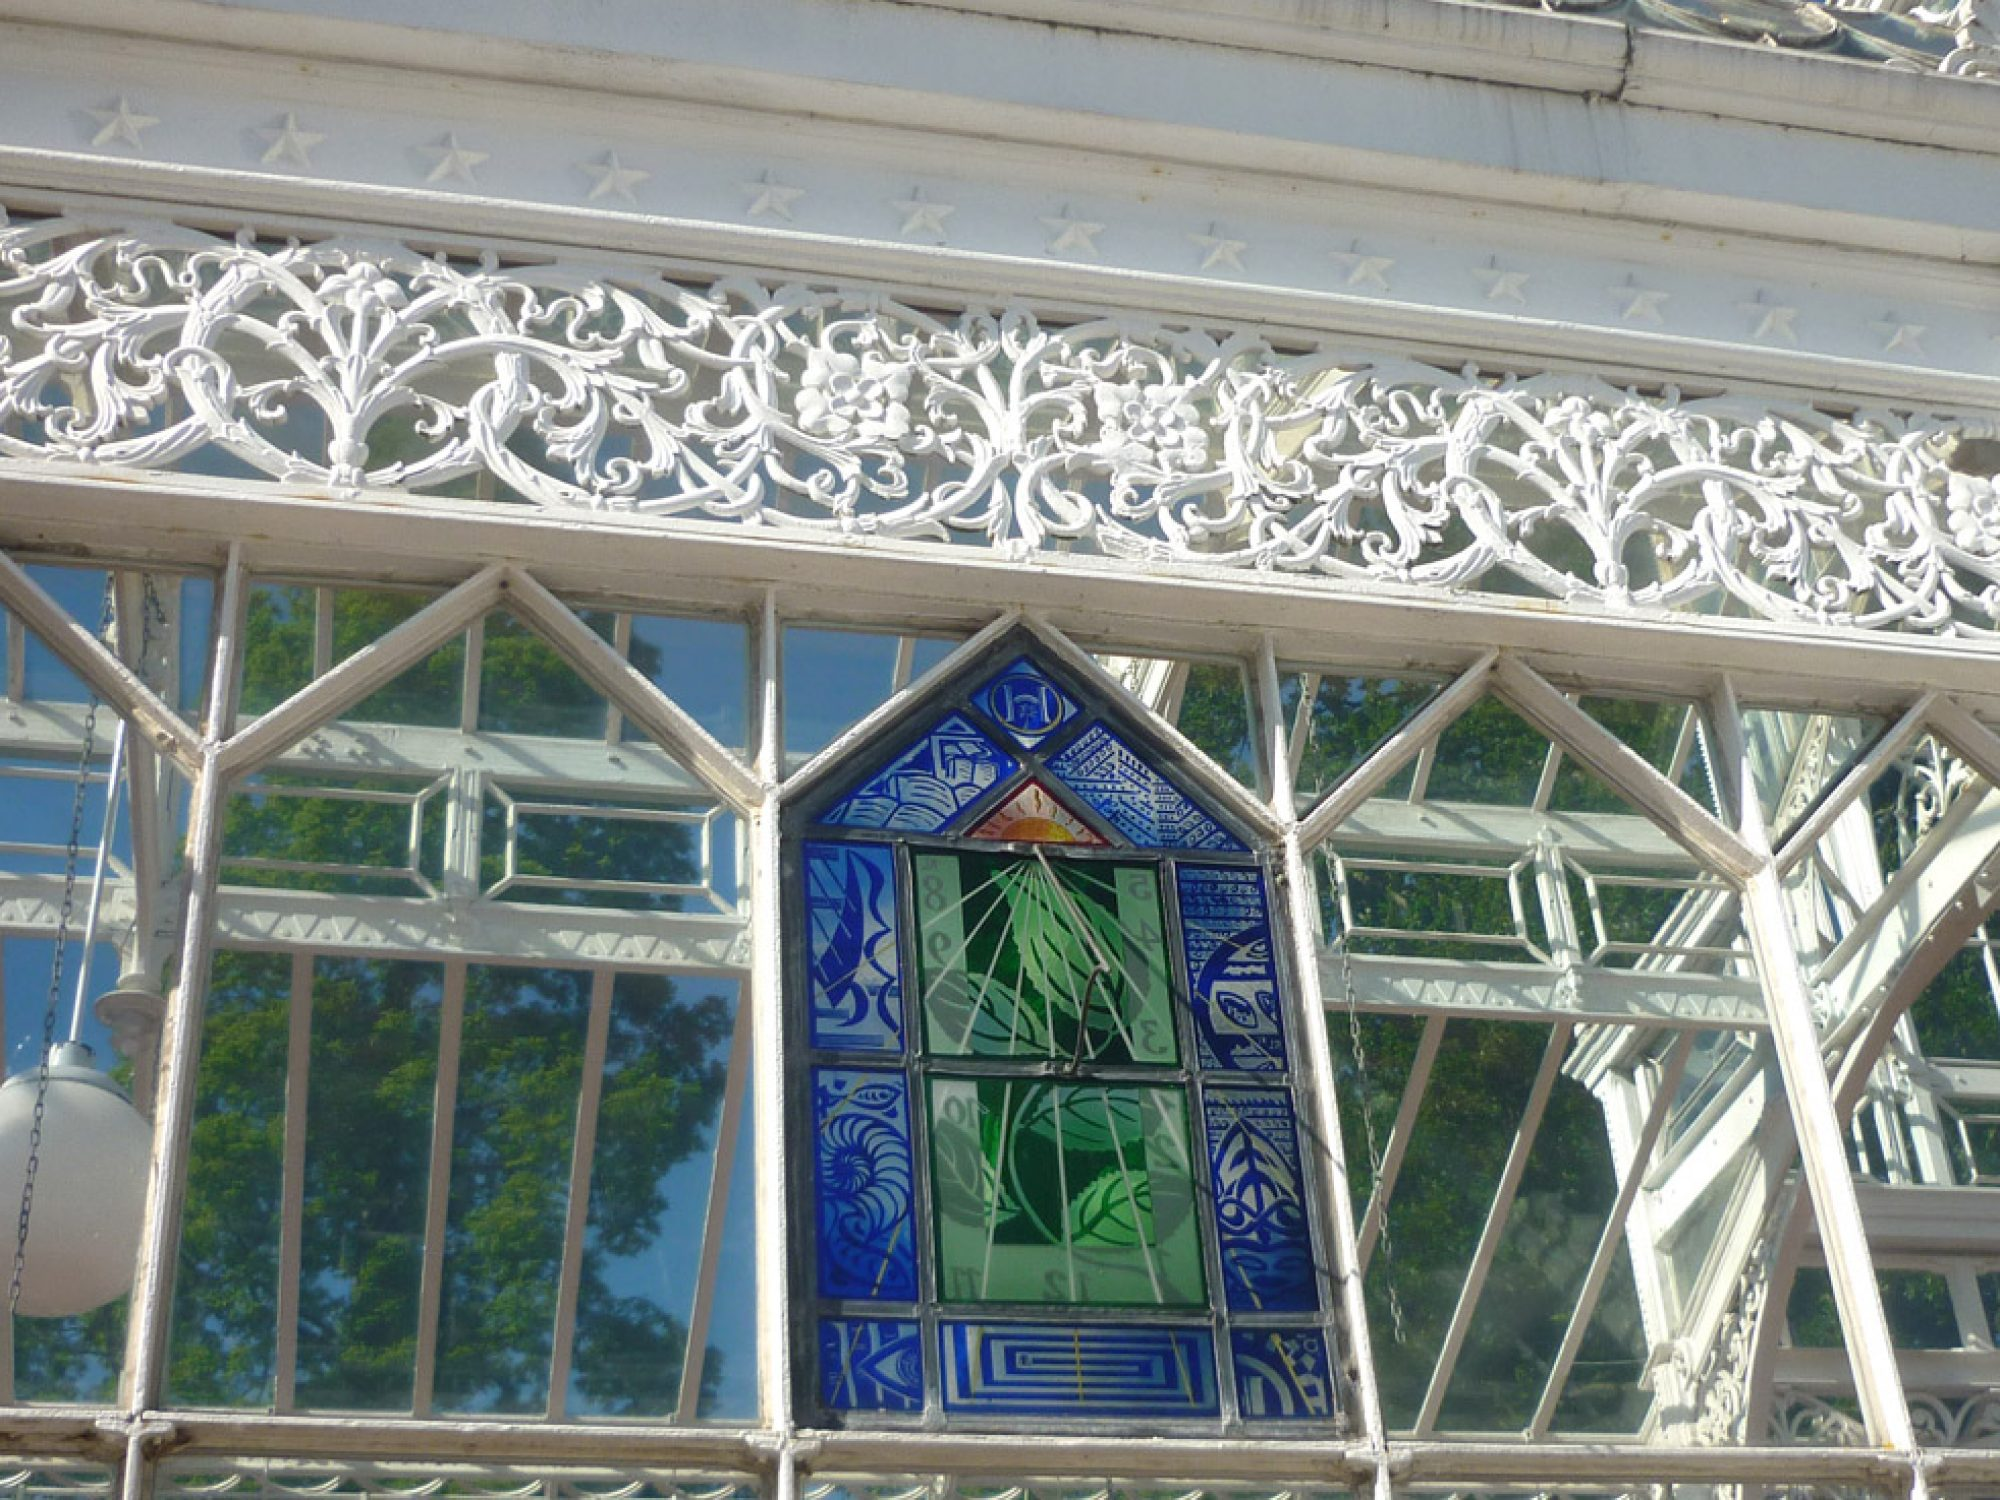 A glass panel in a conservatory with a sundial on it